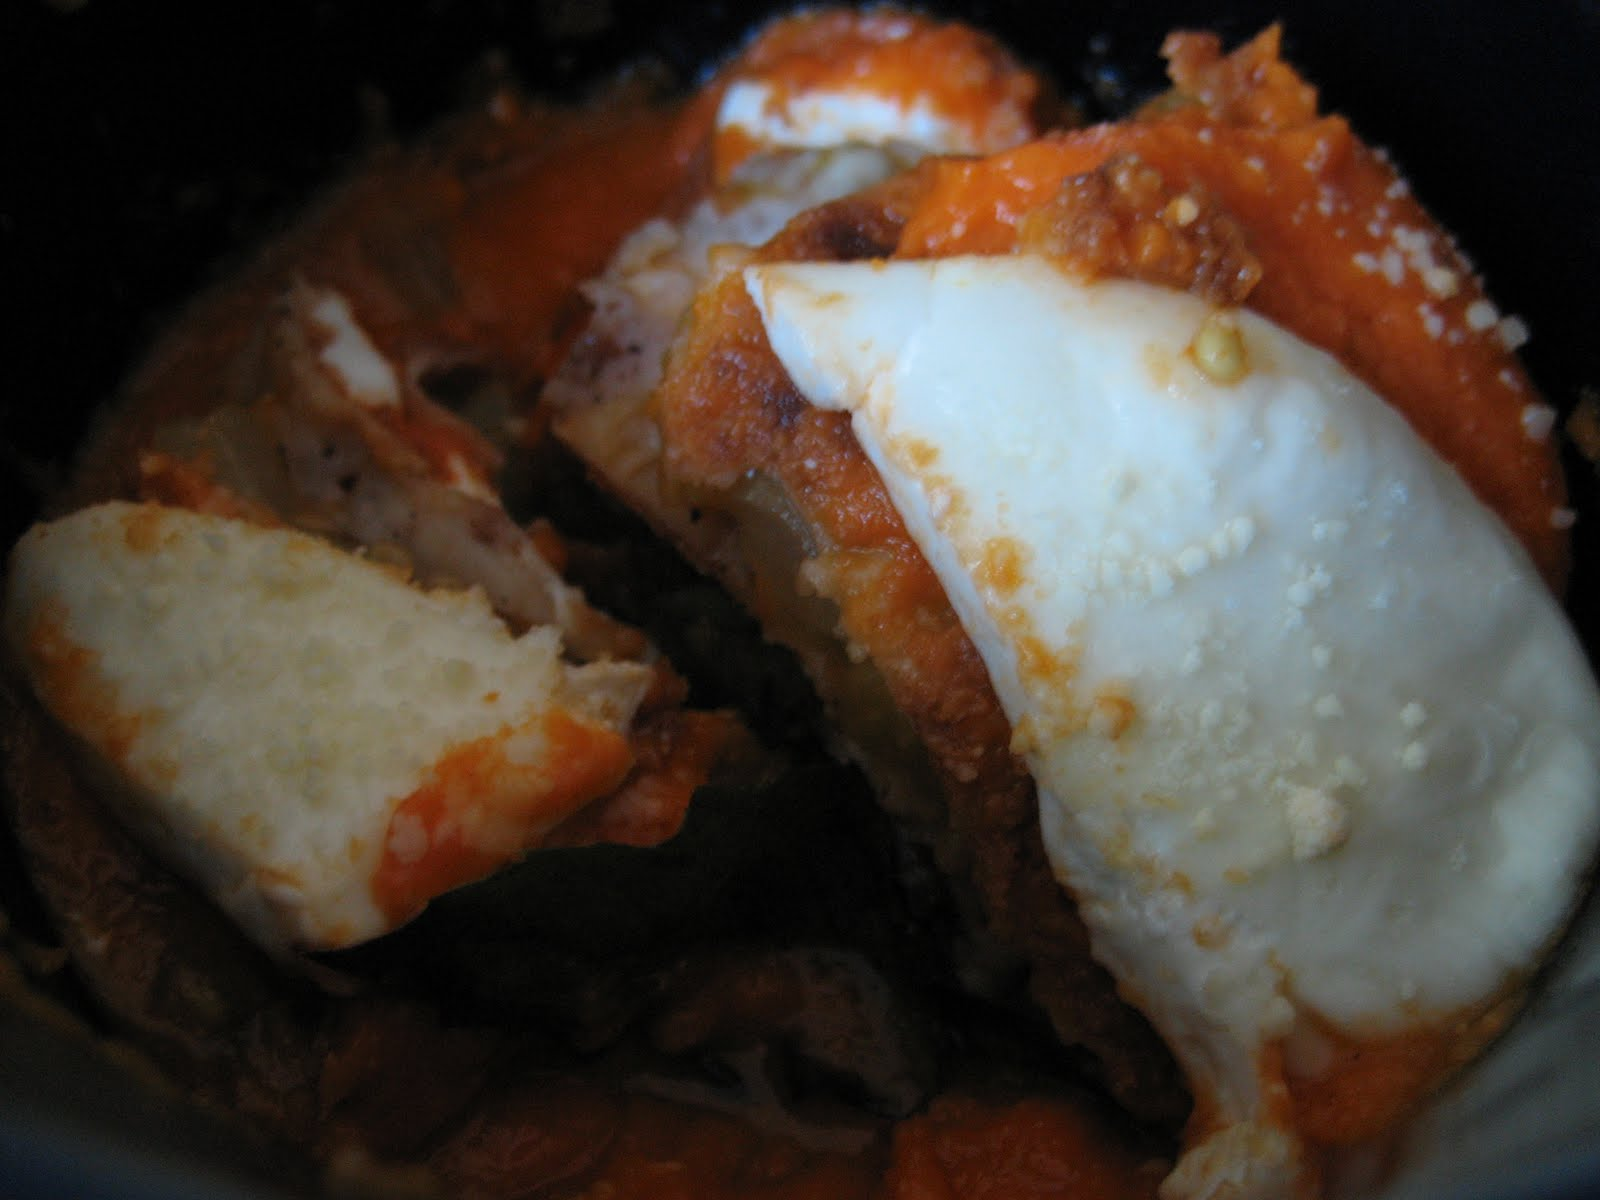 Mission: Food: Fried Green Tomato Parmesan